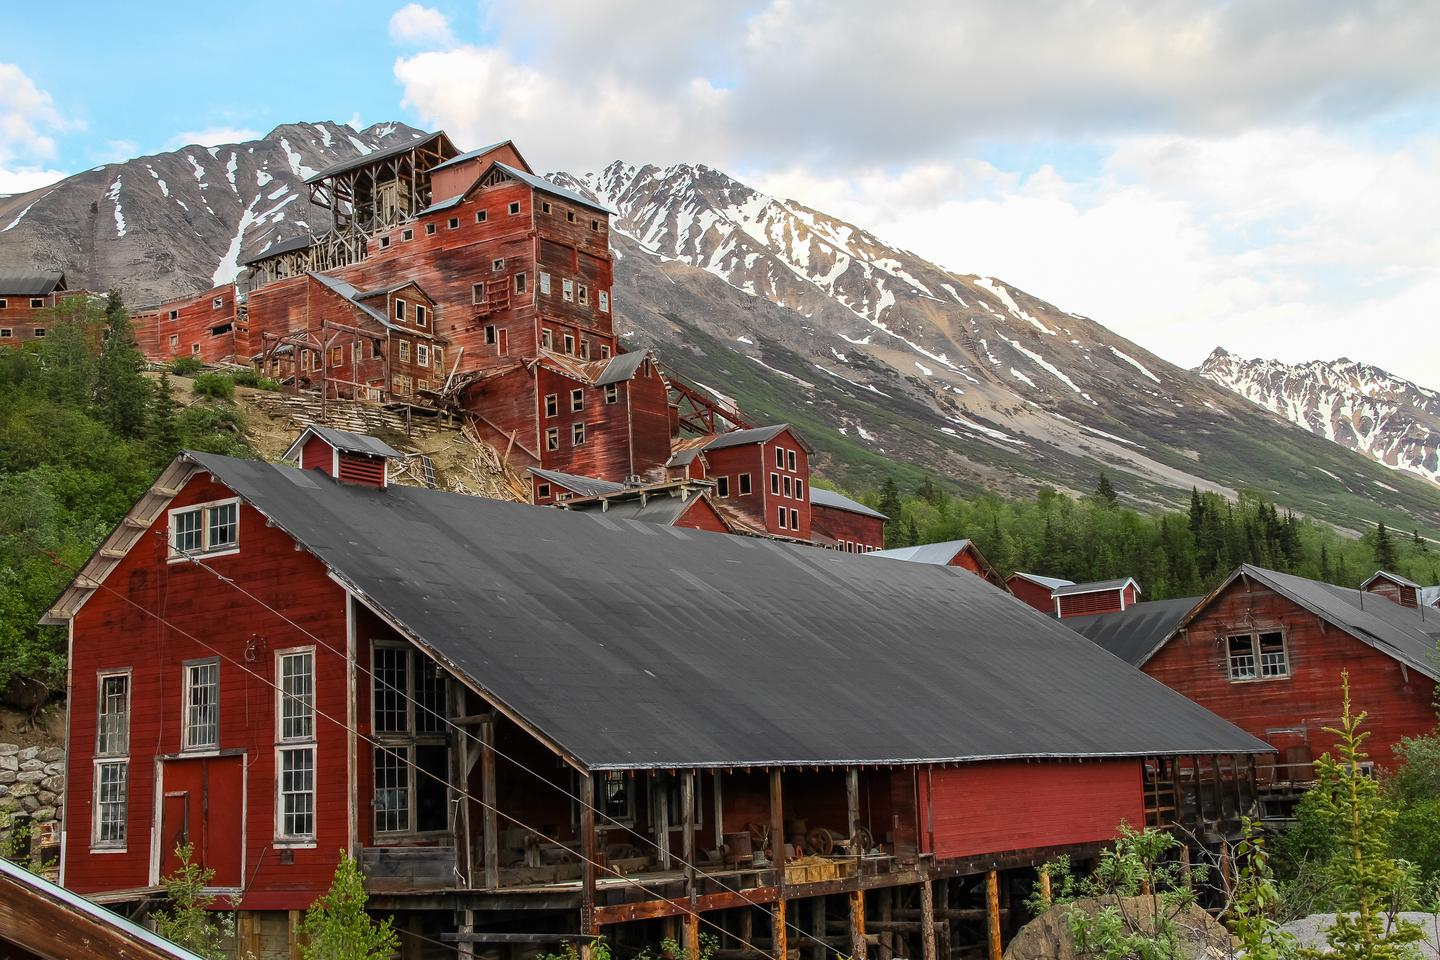 Kennecott Mill TownKennecott Mines National Historic Landmark is found within Wrangell-St. Elias National Park.  This early 1900's copper mining operation overcame numerous challenges and found success in the heart of the Alaskan wilderness.